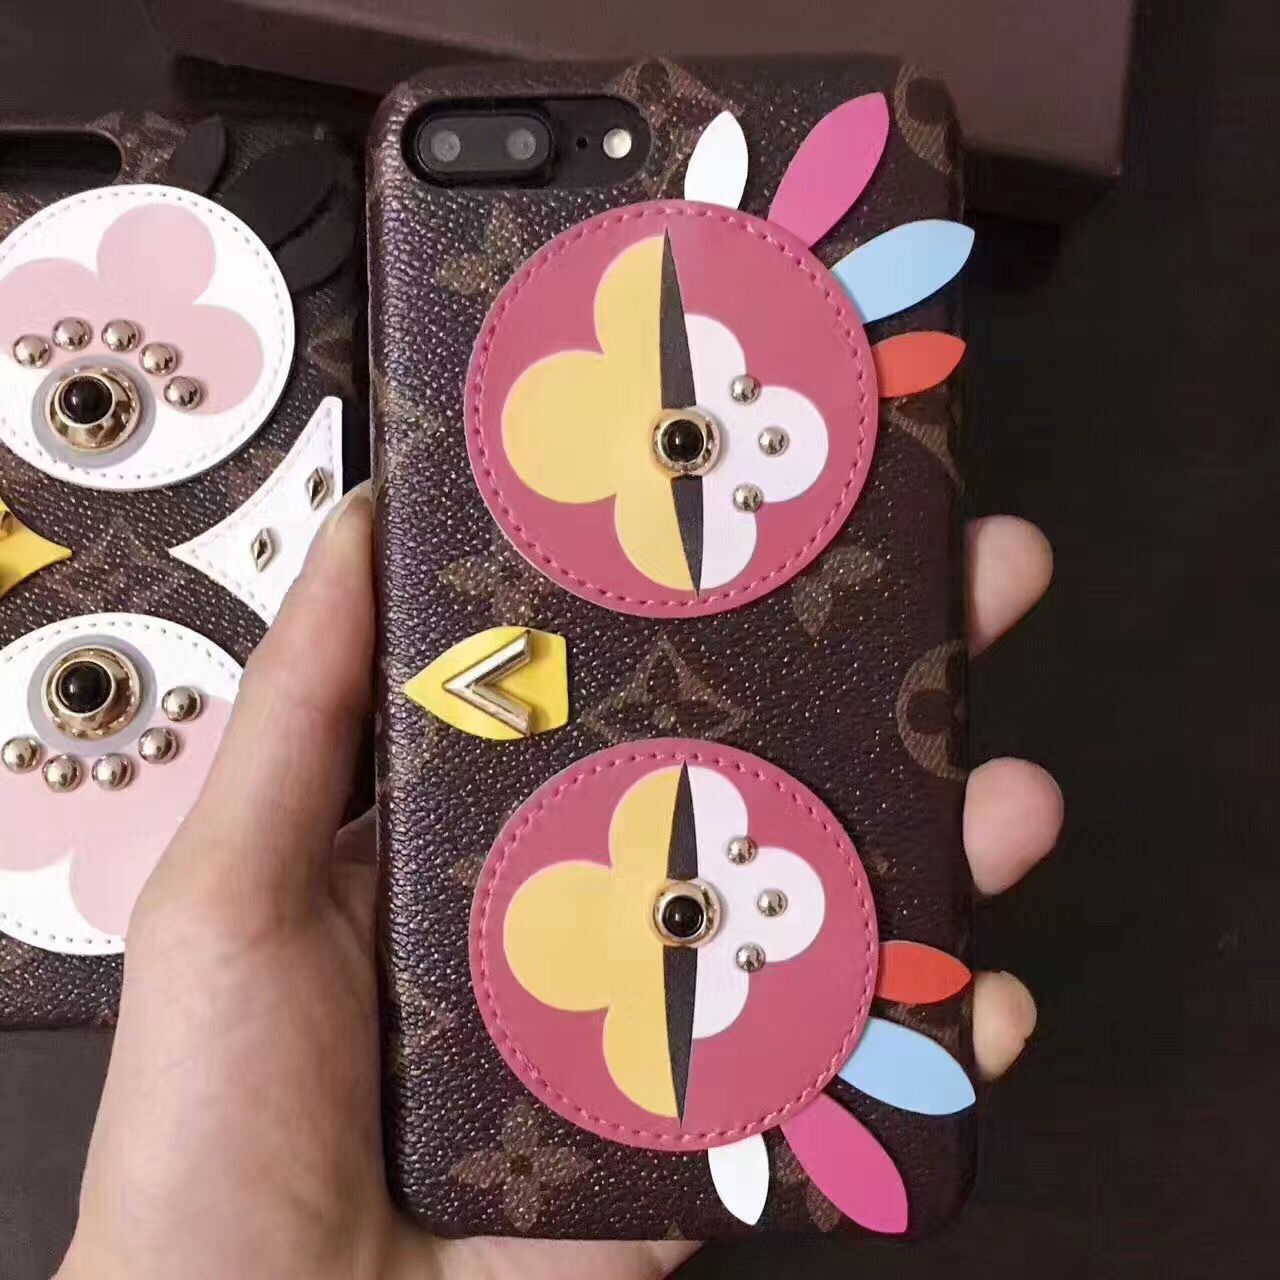 cover of iphone 7 iphone 7 iphone case fashion iphone7 case ipad covers designer cover de iphone 7 iphone 7 and 7 ipod 7 covers cell phone custom cases iphone button case